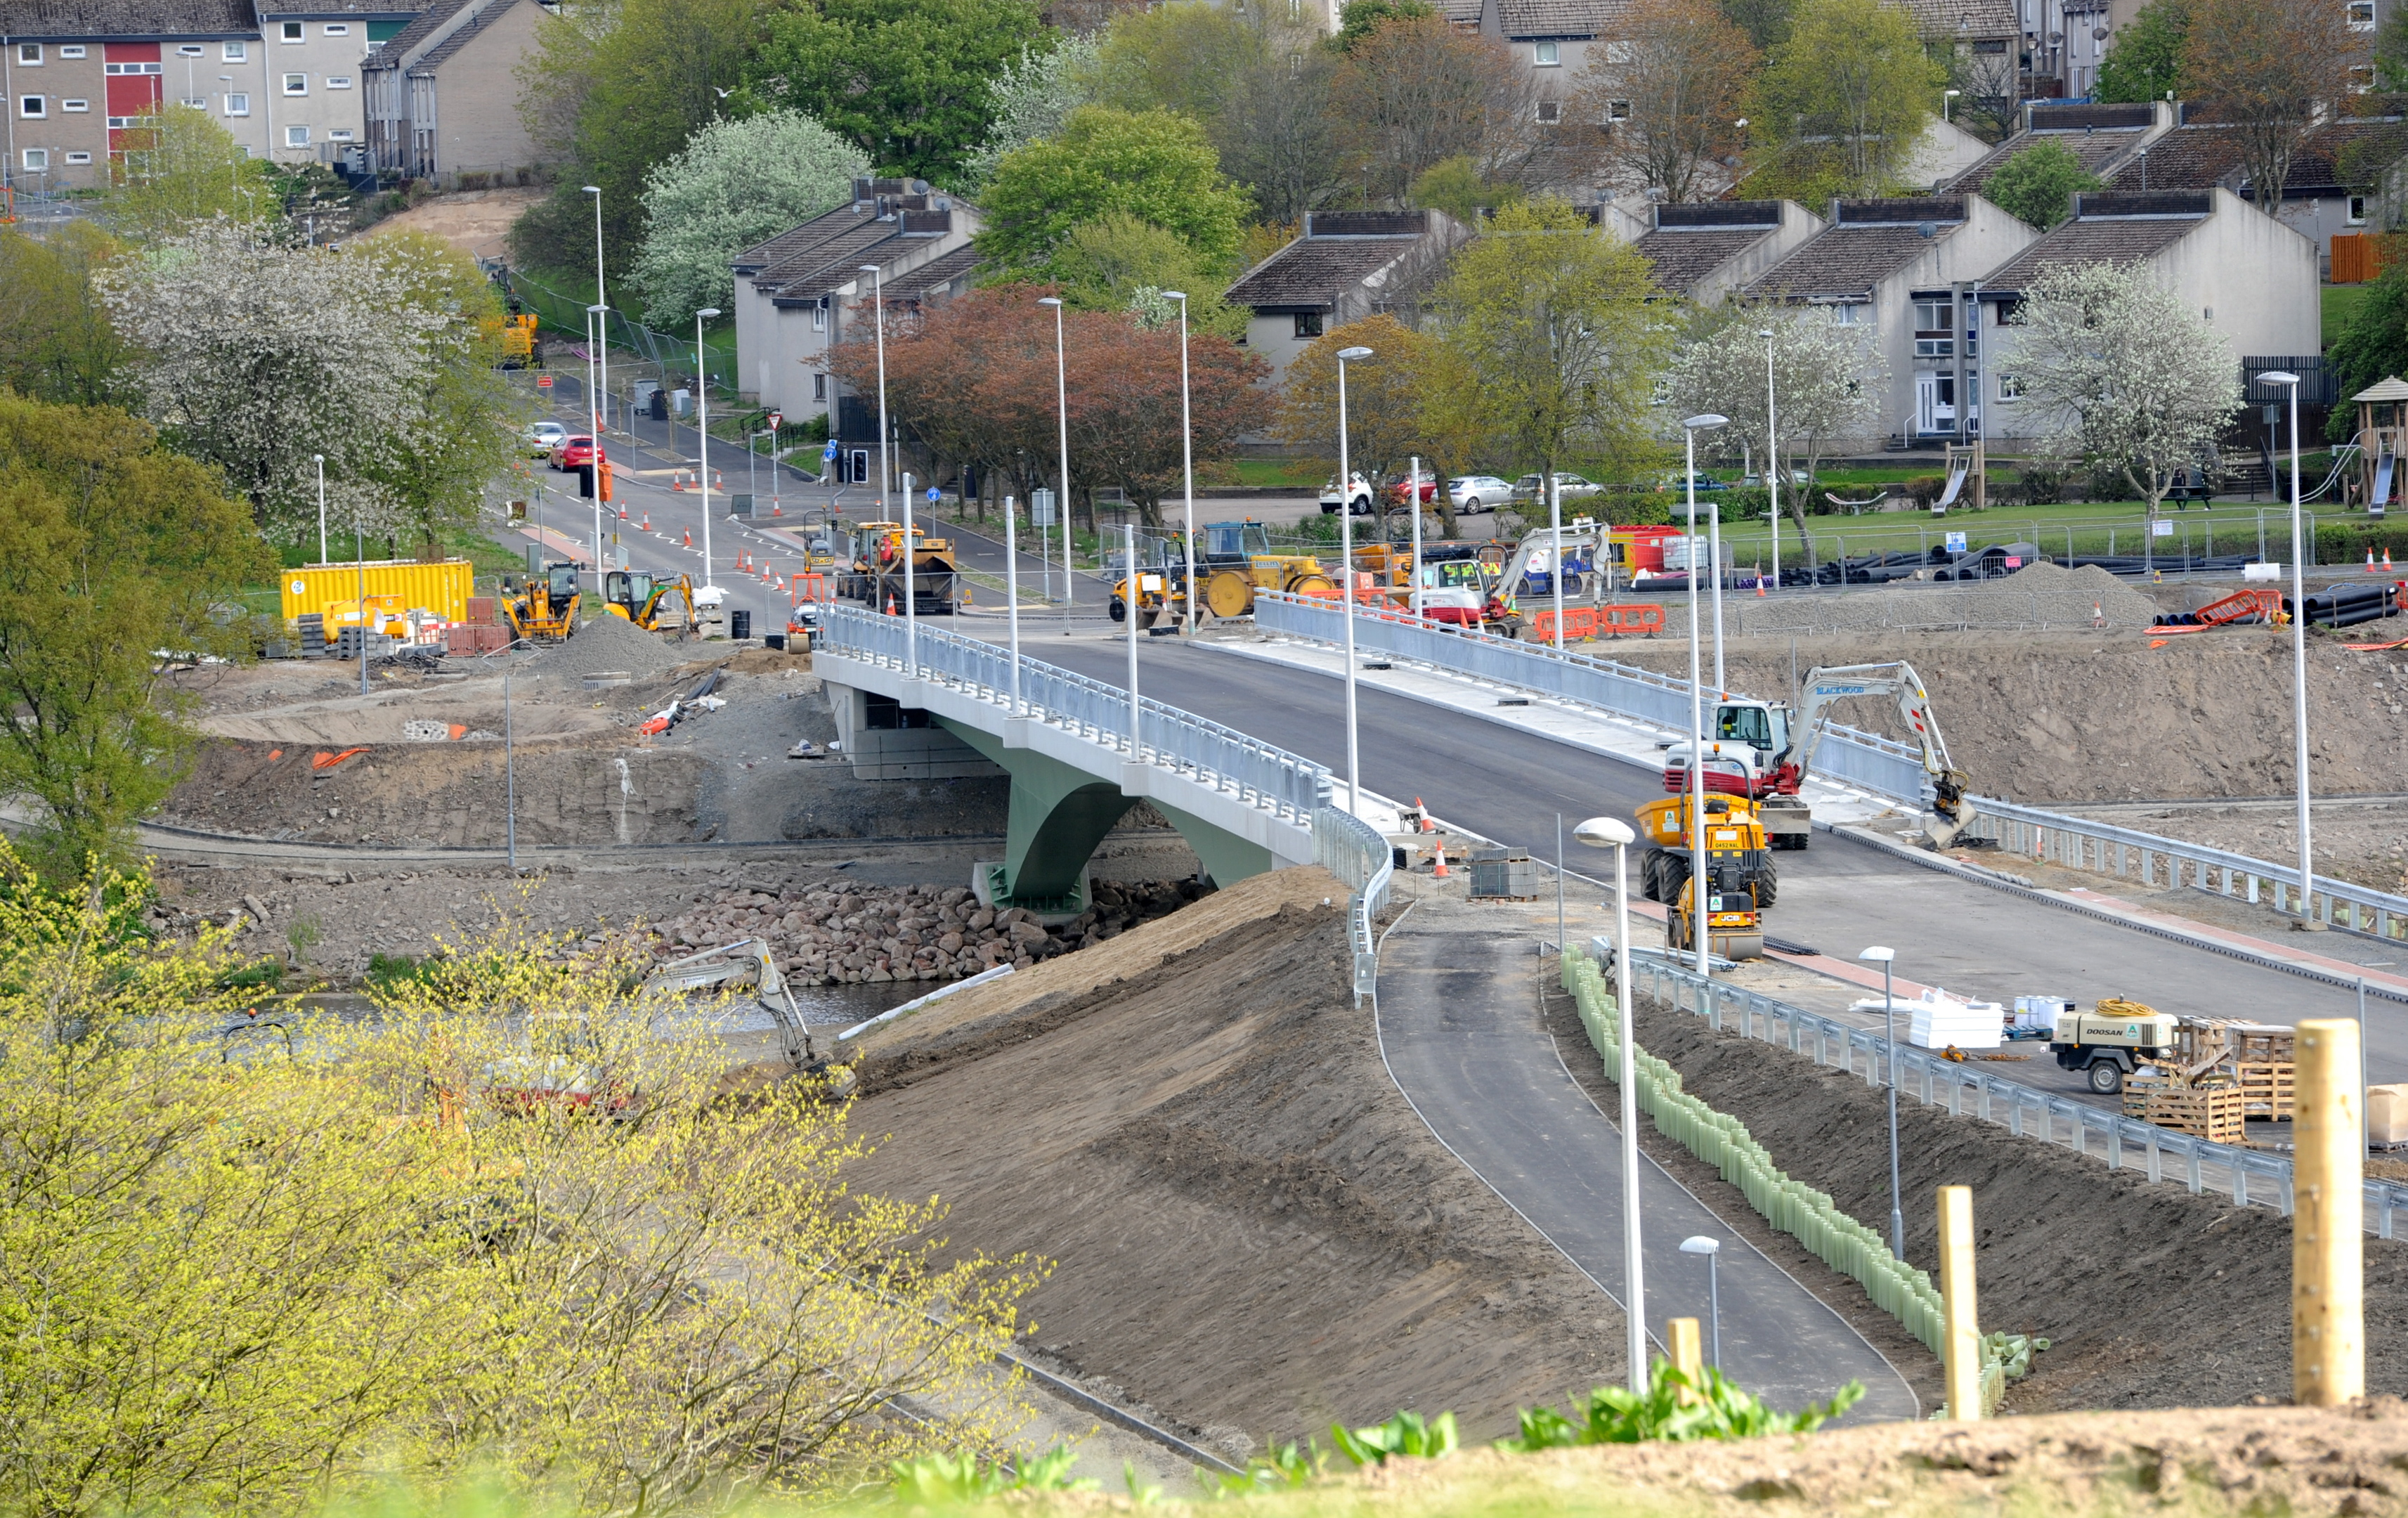 The under-construction Third Don Crossing looking towards Tillydrone.